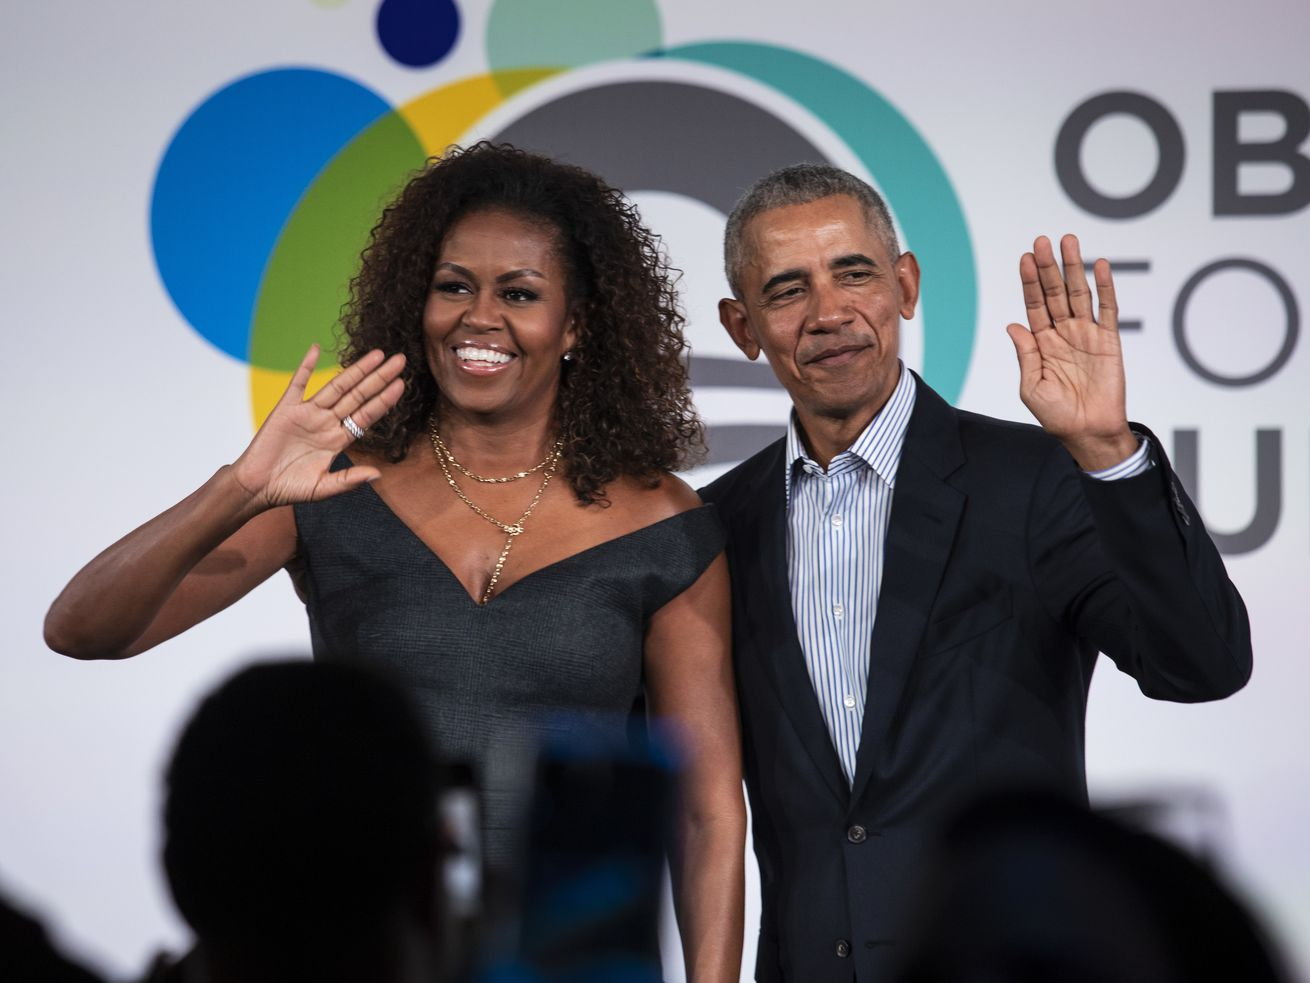 Former President Barack Obama and first lady Michelle Obama appear at the Obama Foundation Summit in Chicago on Oct. 29.